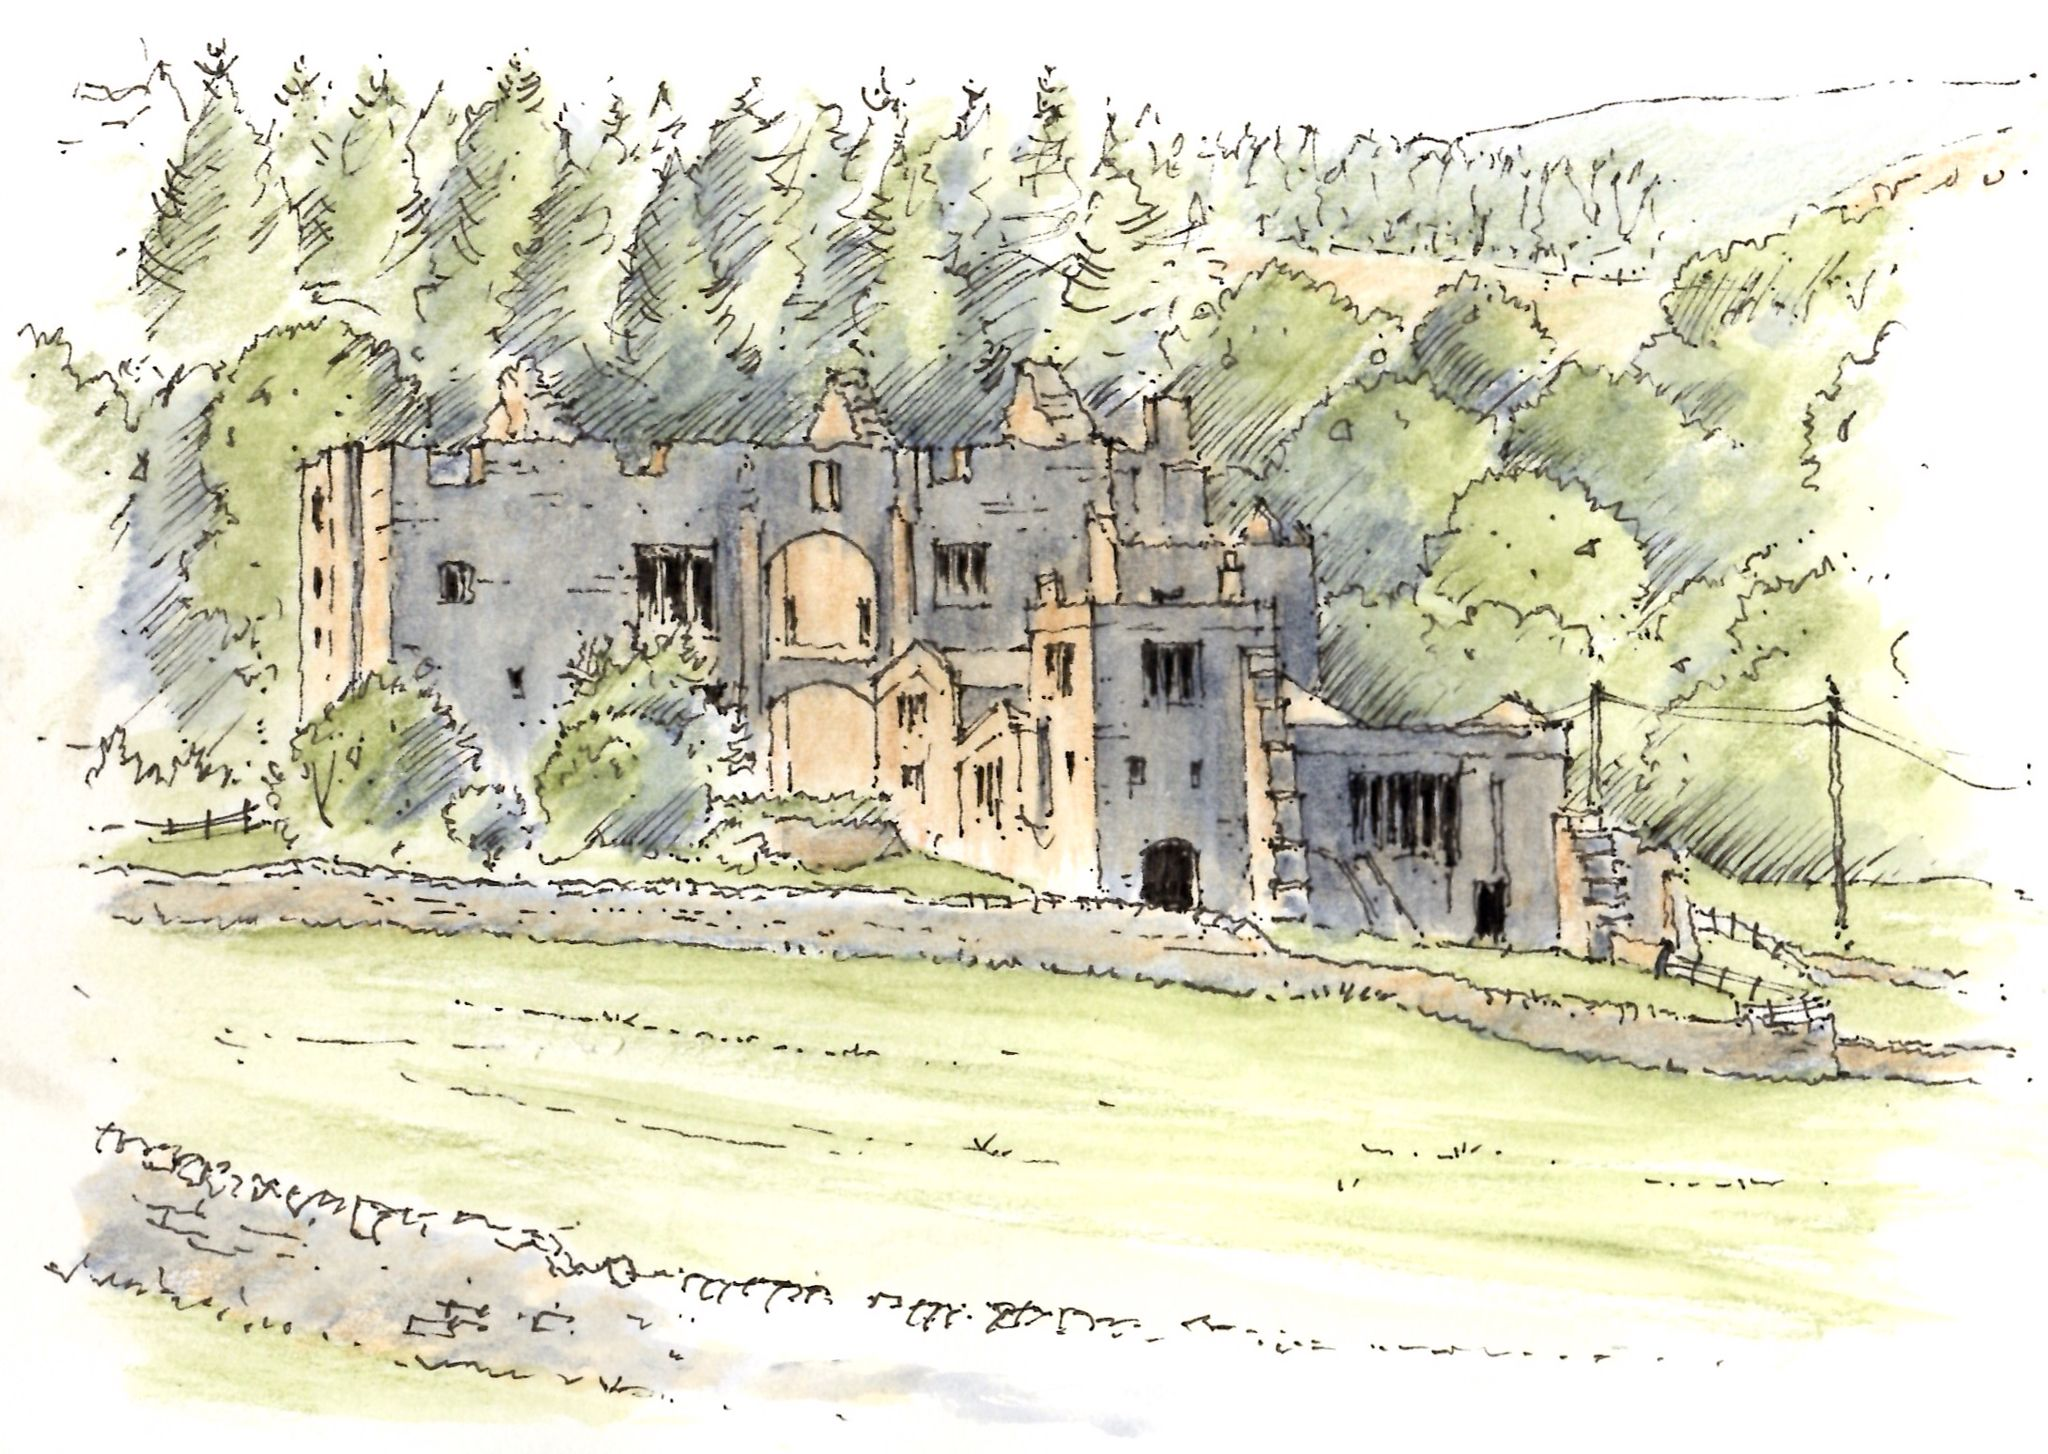 The Ruin Barden Tower A Medieval Hunting Lodge Up River Wharfe From Bolton Abbey